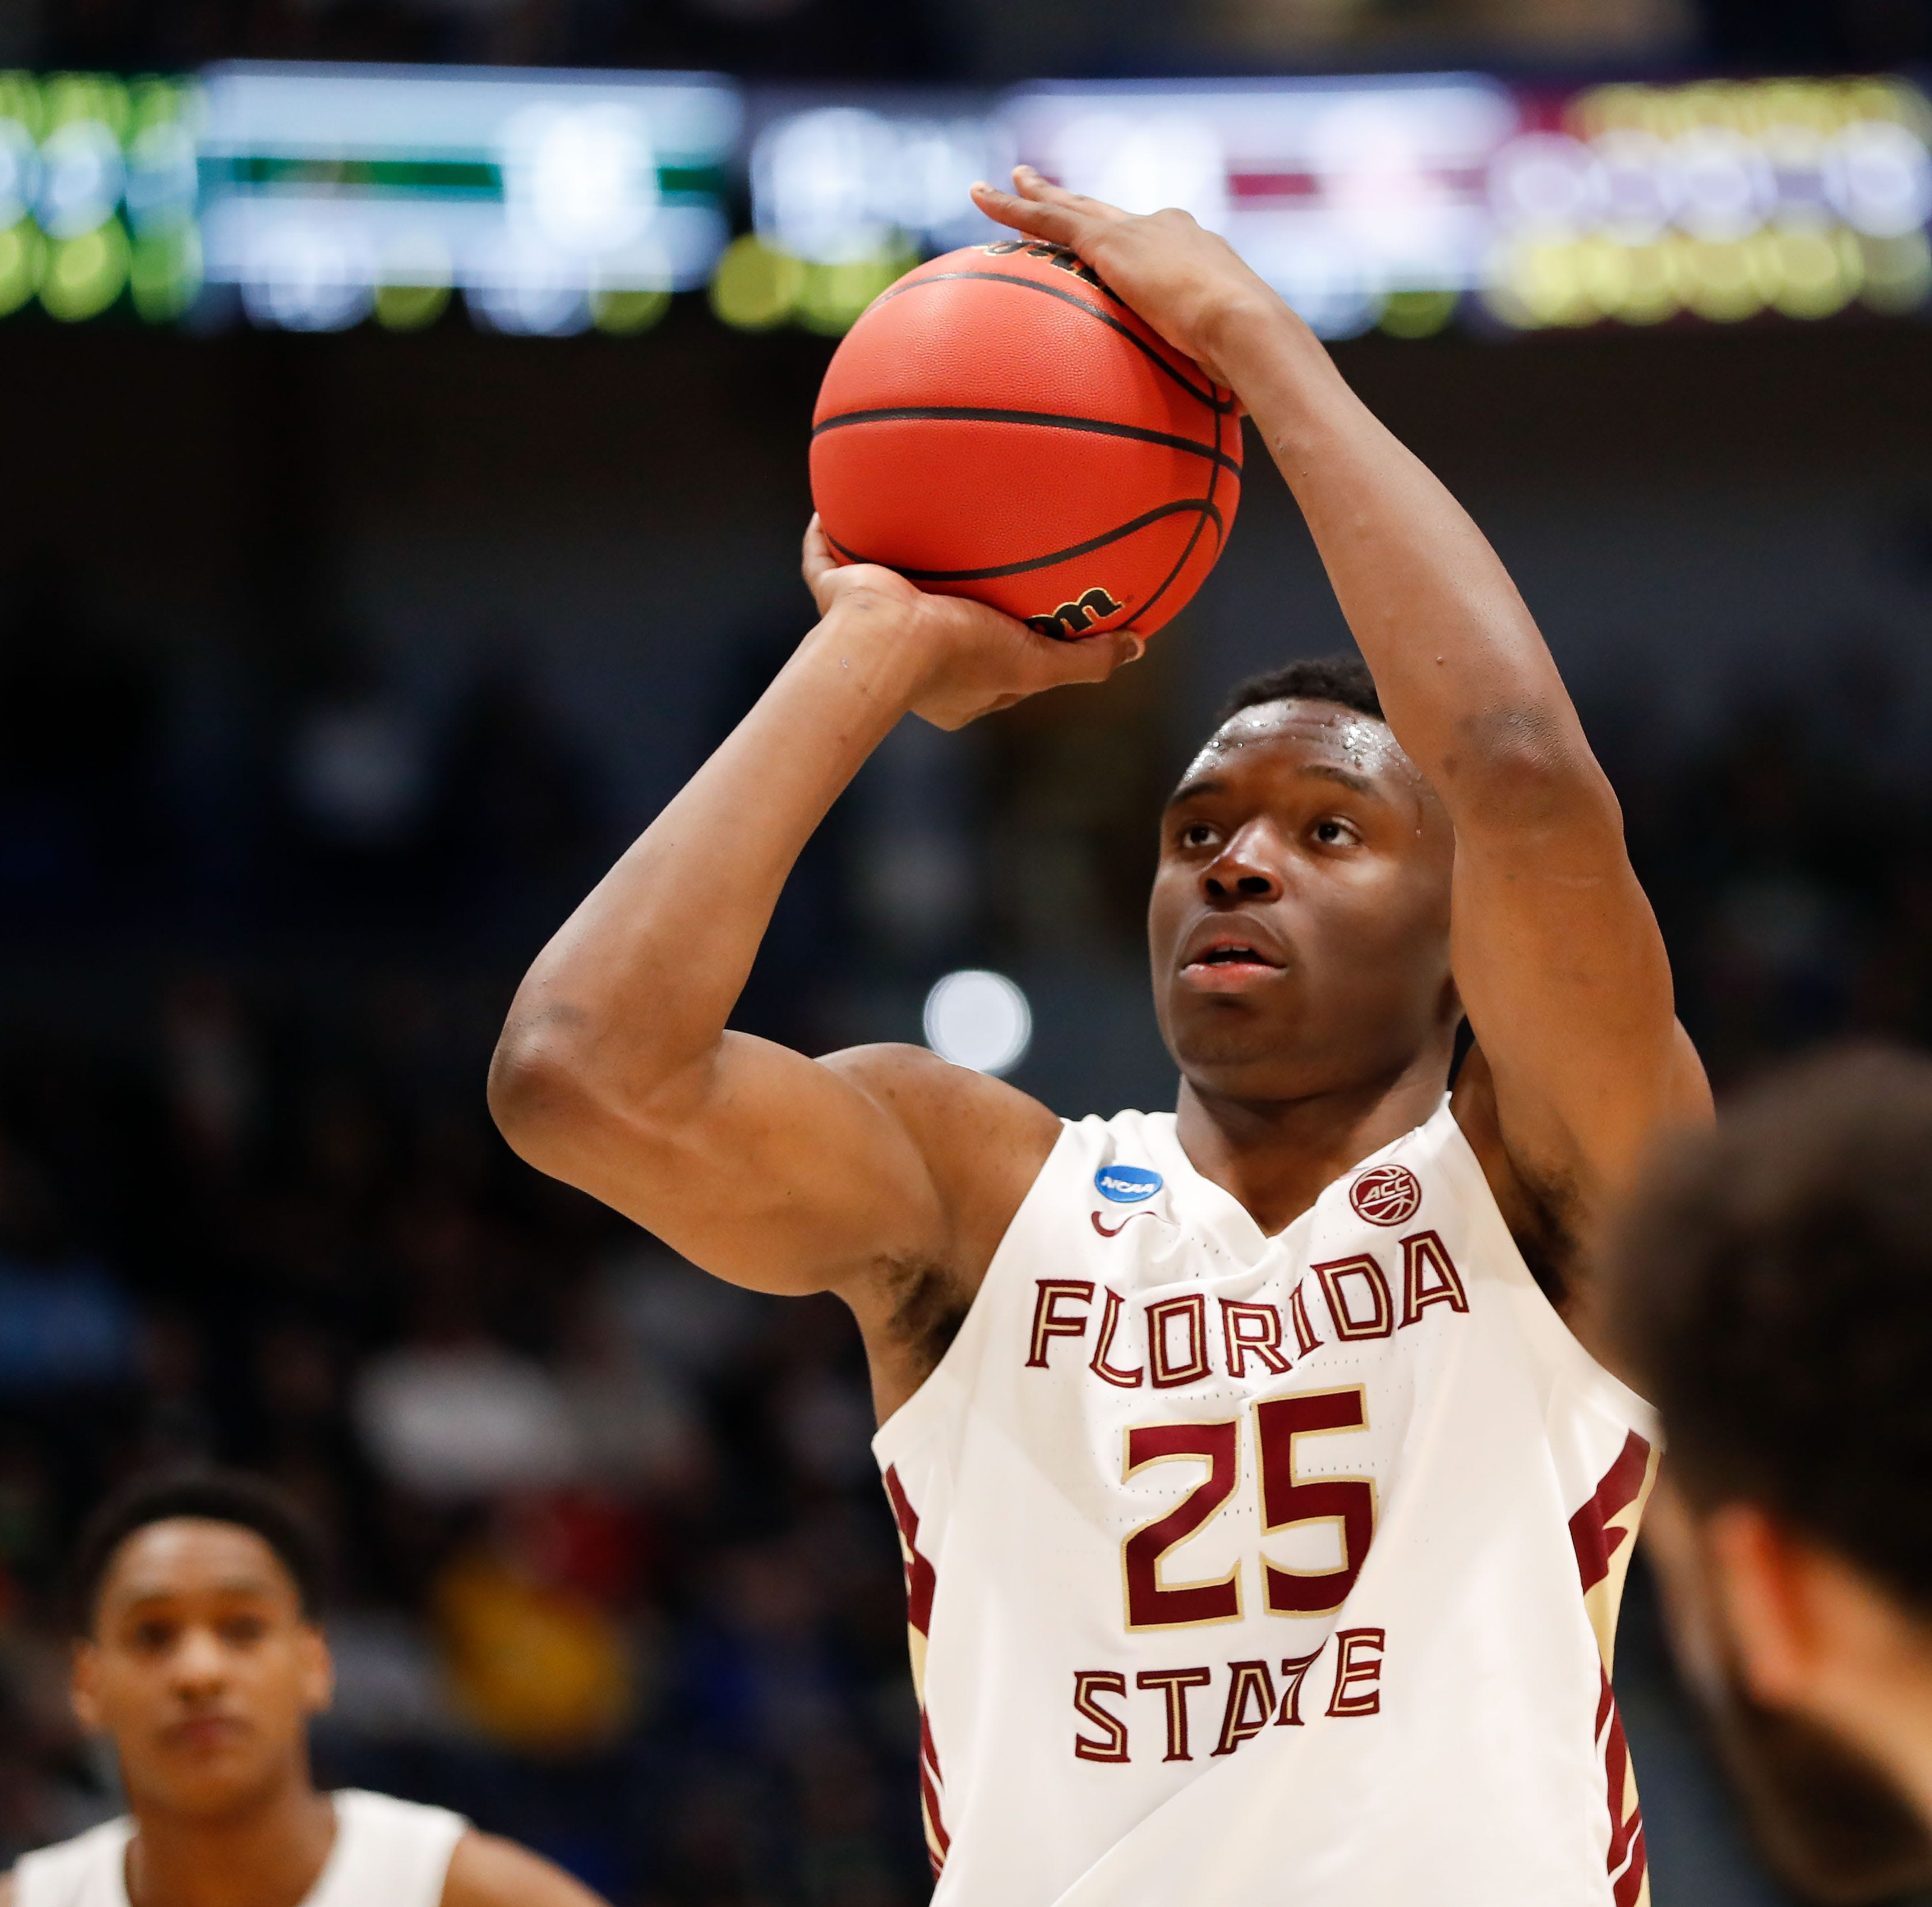 NCAA Tournament 2019: How to watch, stream Florida State basketball vs. Murray State